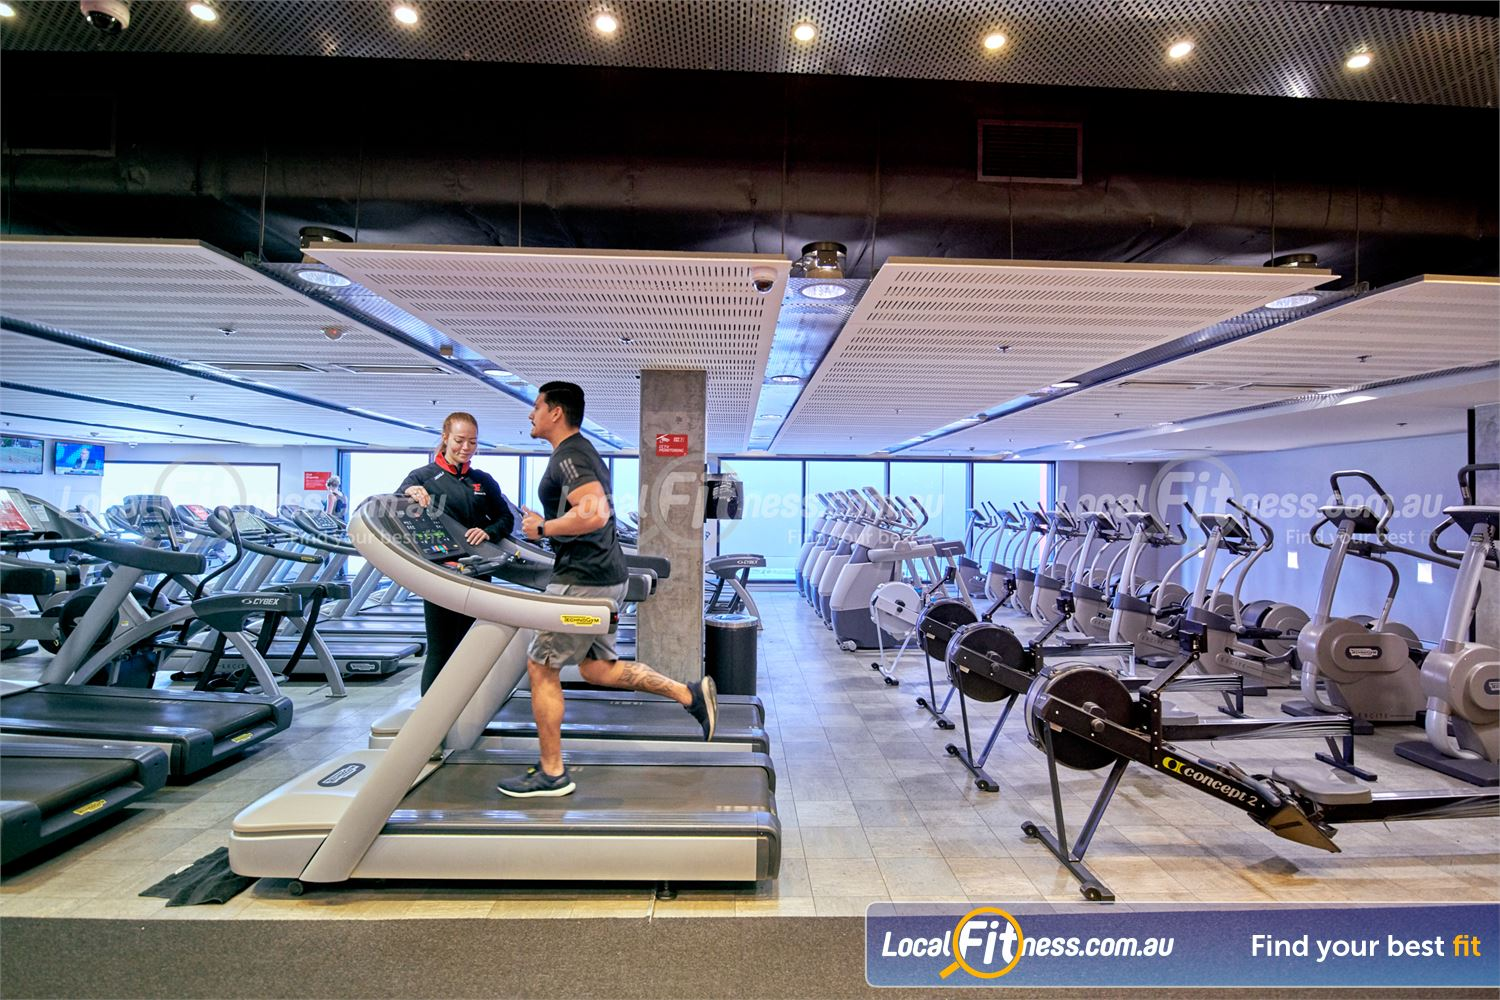 Fitness First Victoria Gardens Near Richmond North Rows of state of the art treadmills, cross-trainers and rowers.